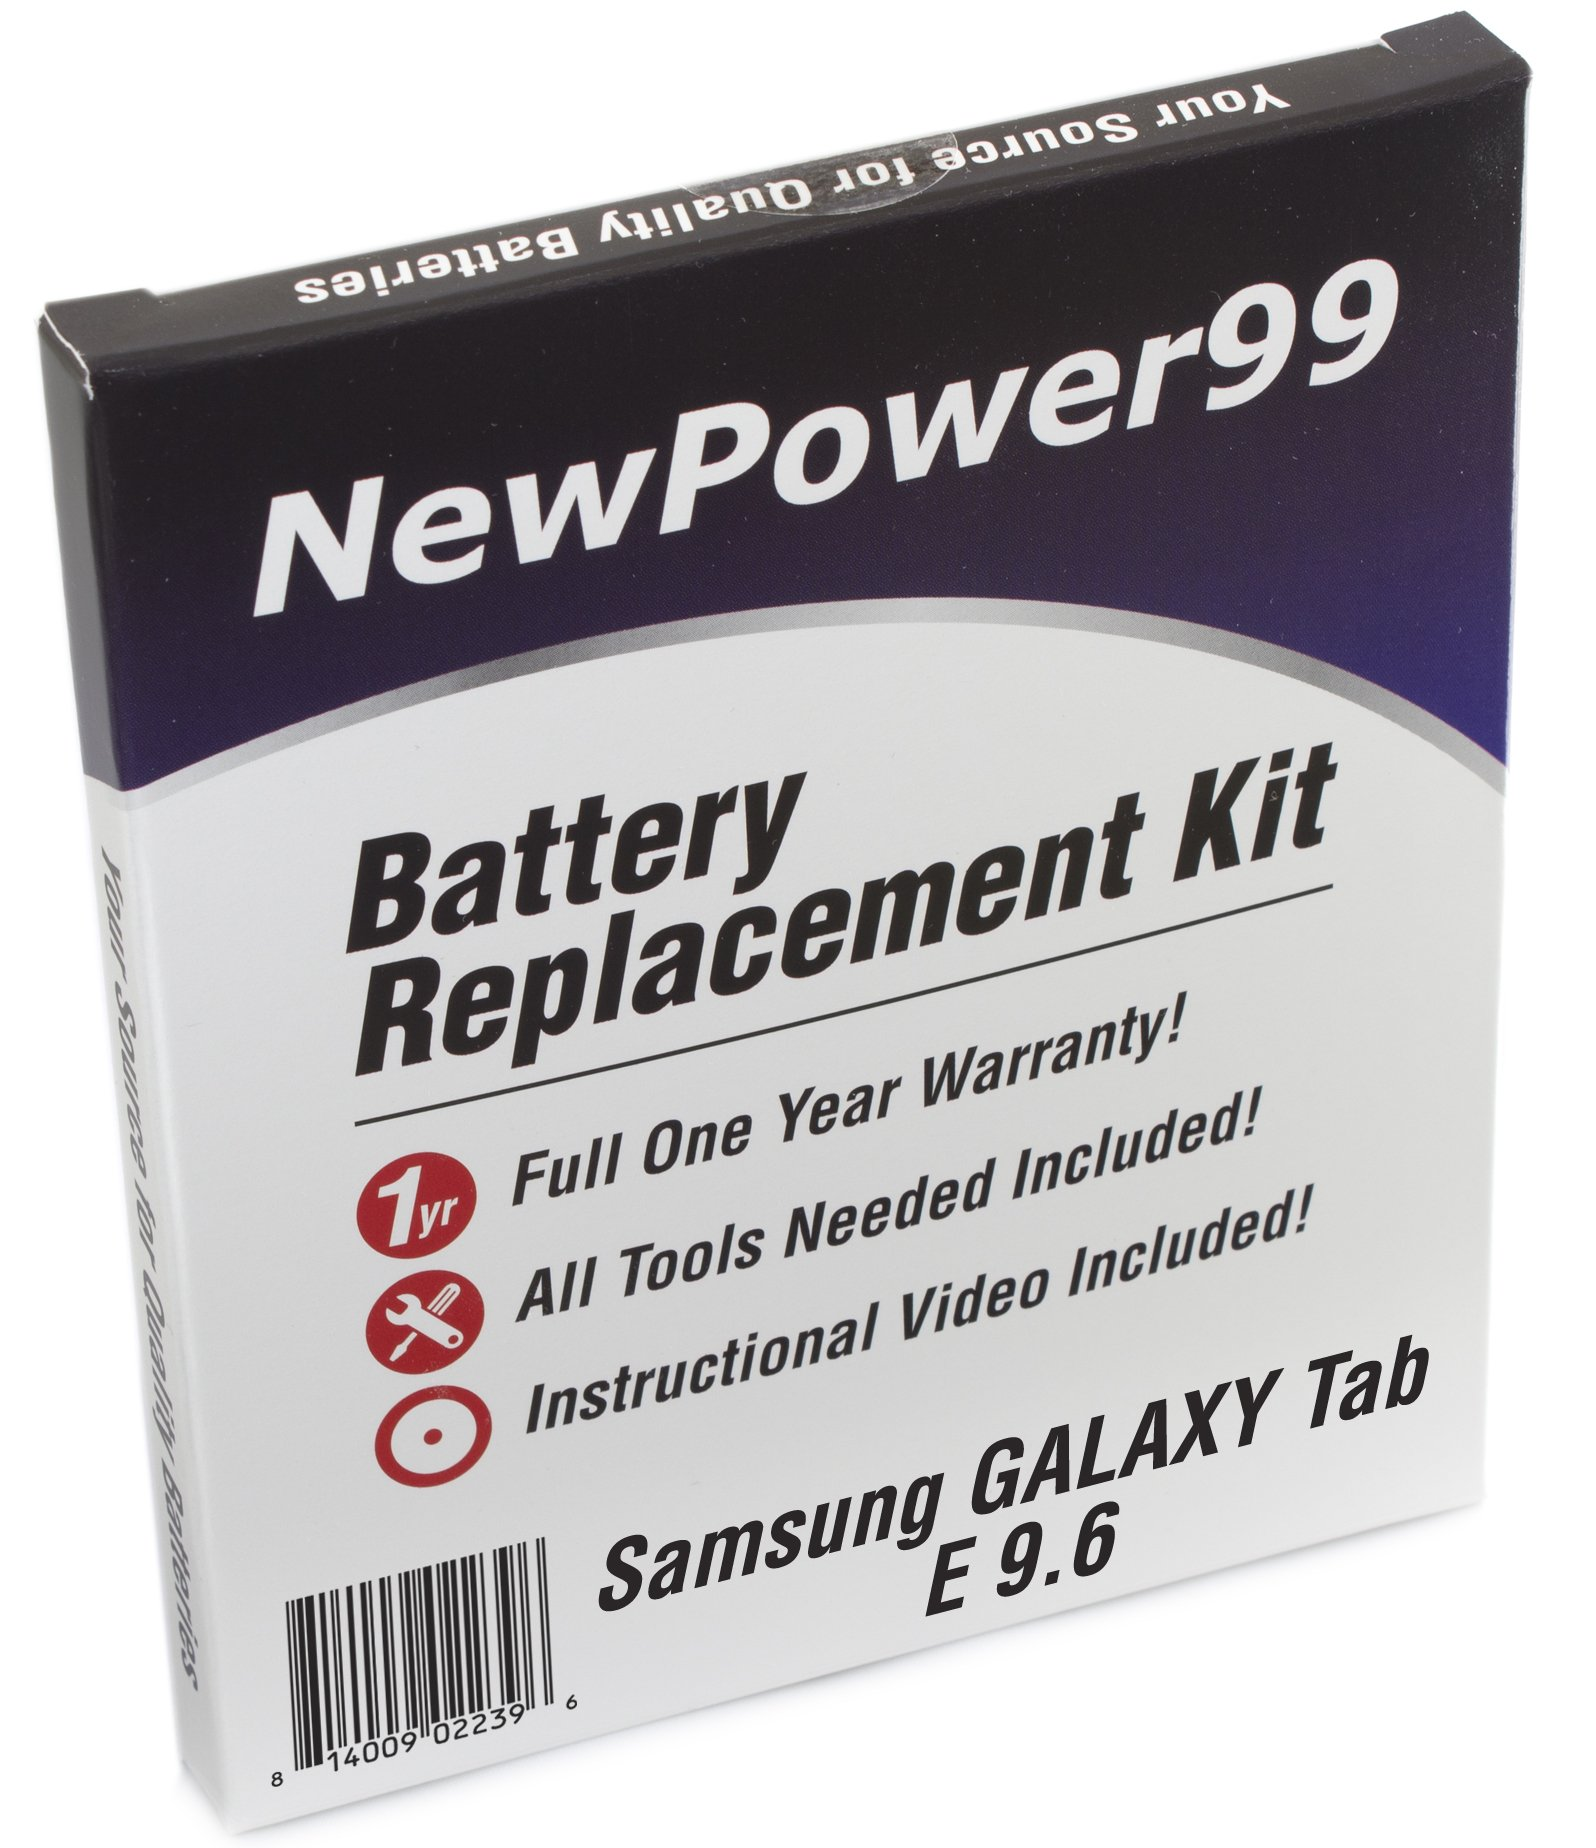 NewPower99 Battery Replacement Kit for Samsung Galaxy Tab E 9.6 with Video Installation DVD, Installation Tools, and Extended Life Battery by NewPower99